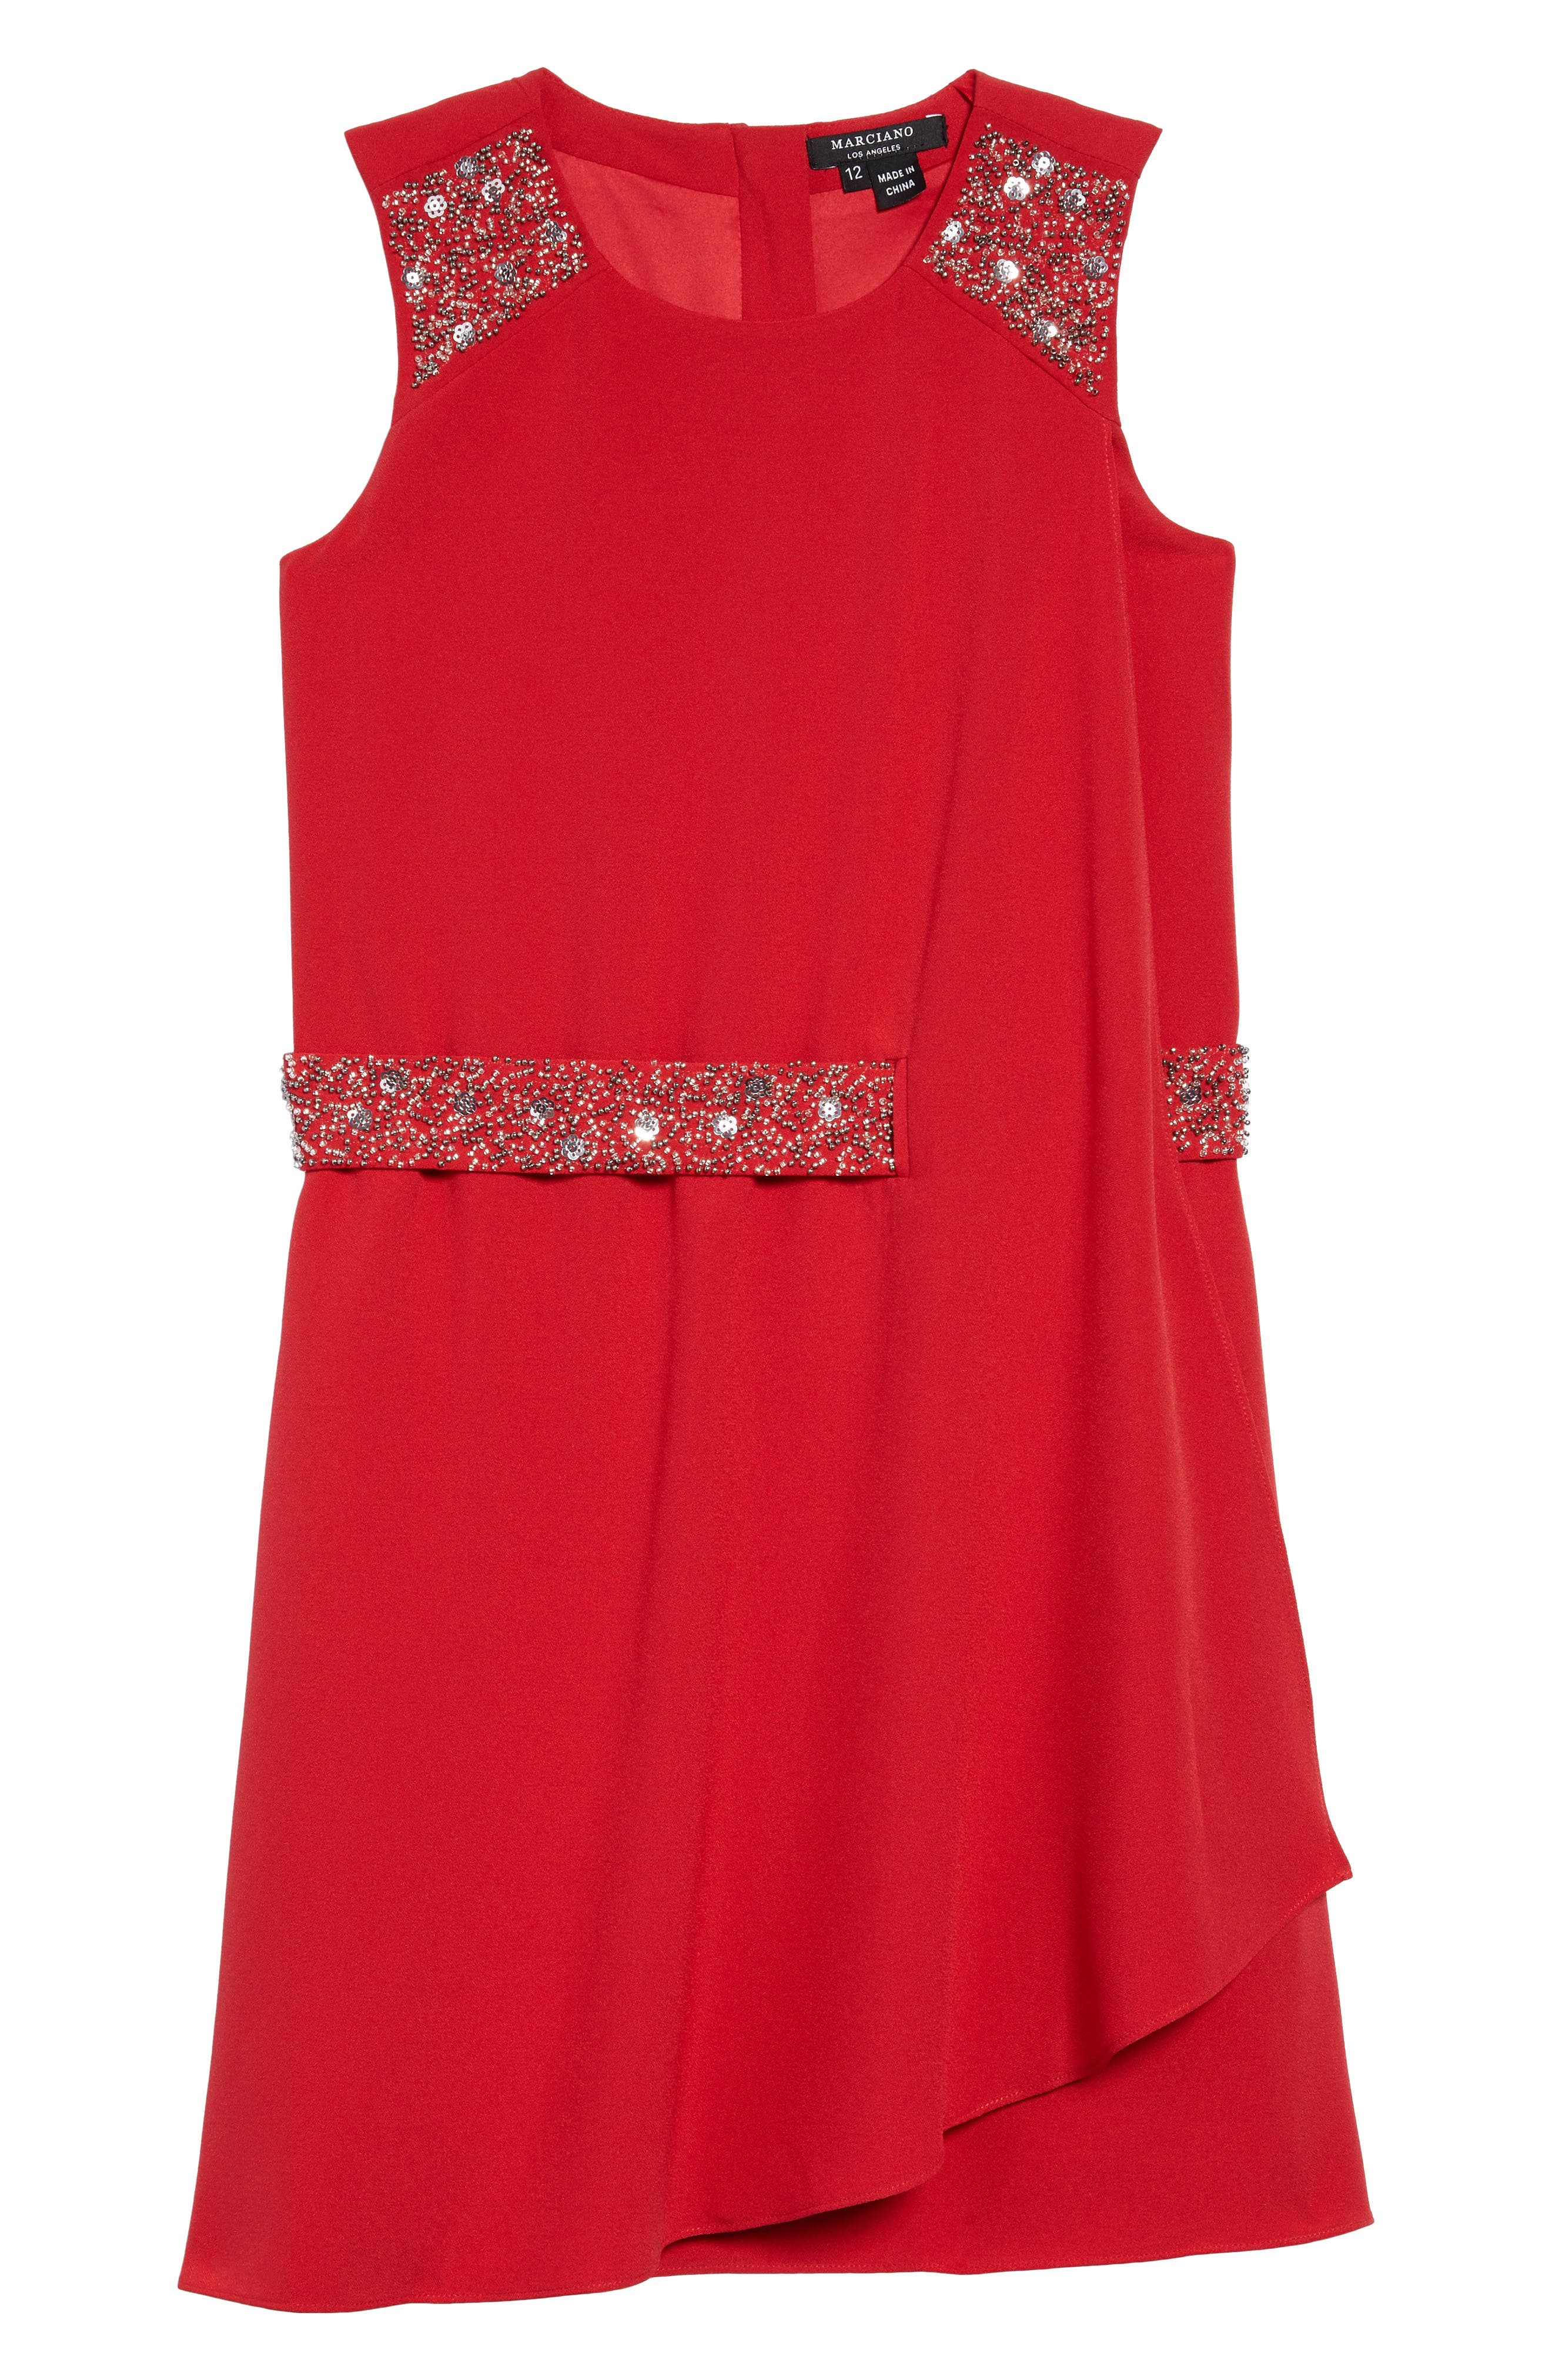 Alternate Image 1 Selected - Marciano Crepe Faux Wrap Dress (Little Girls & Big Girls)